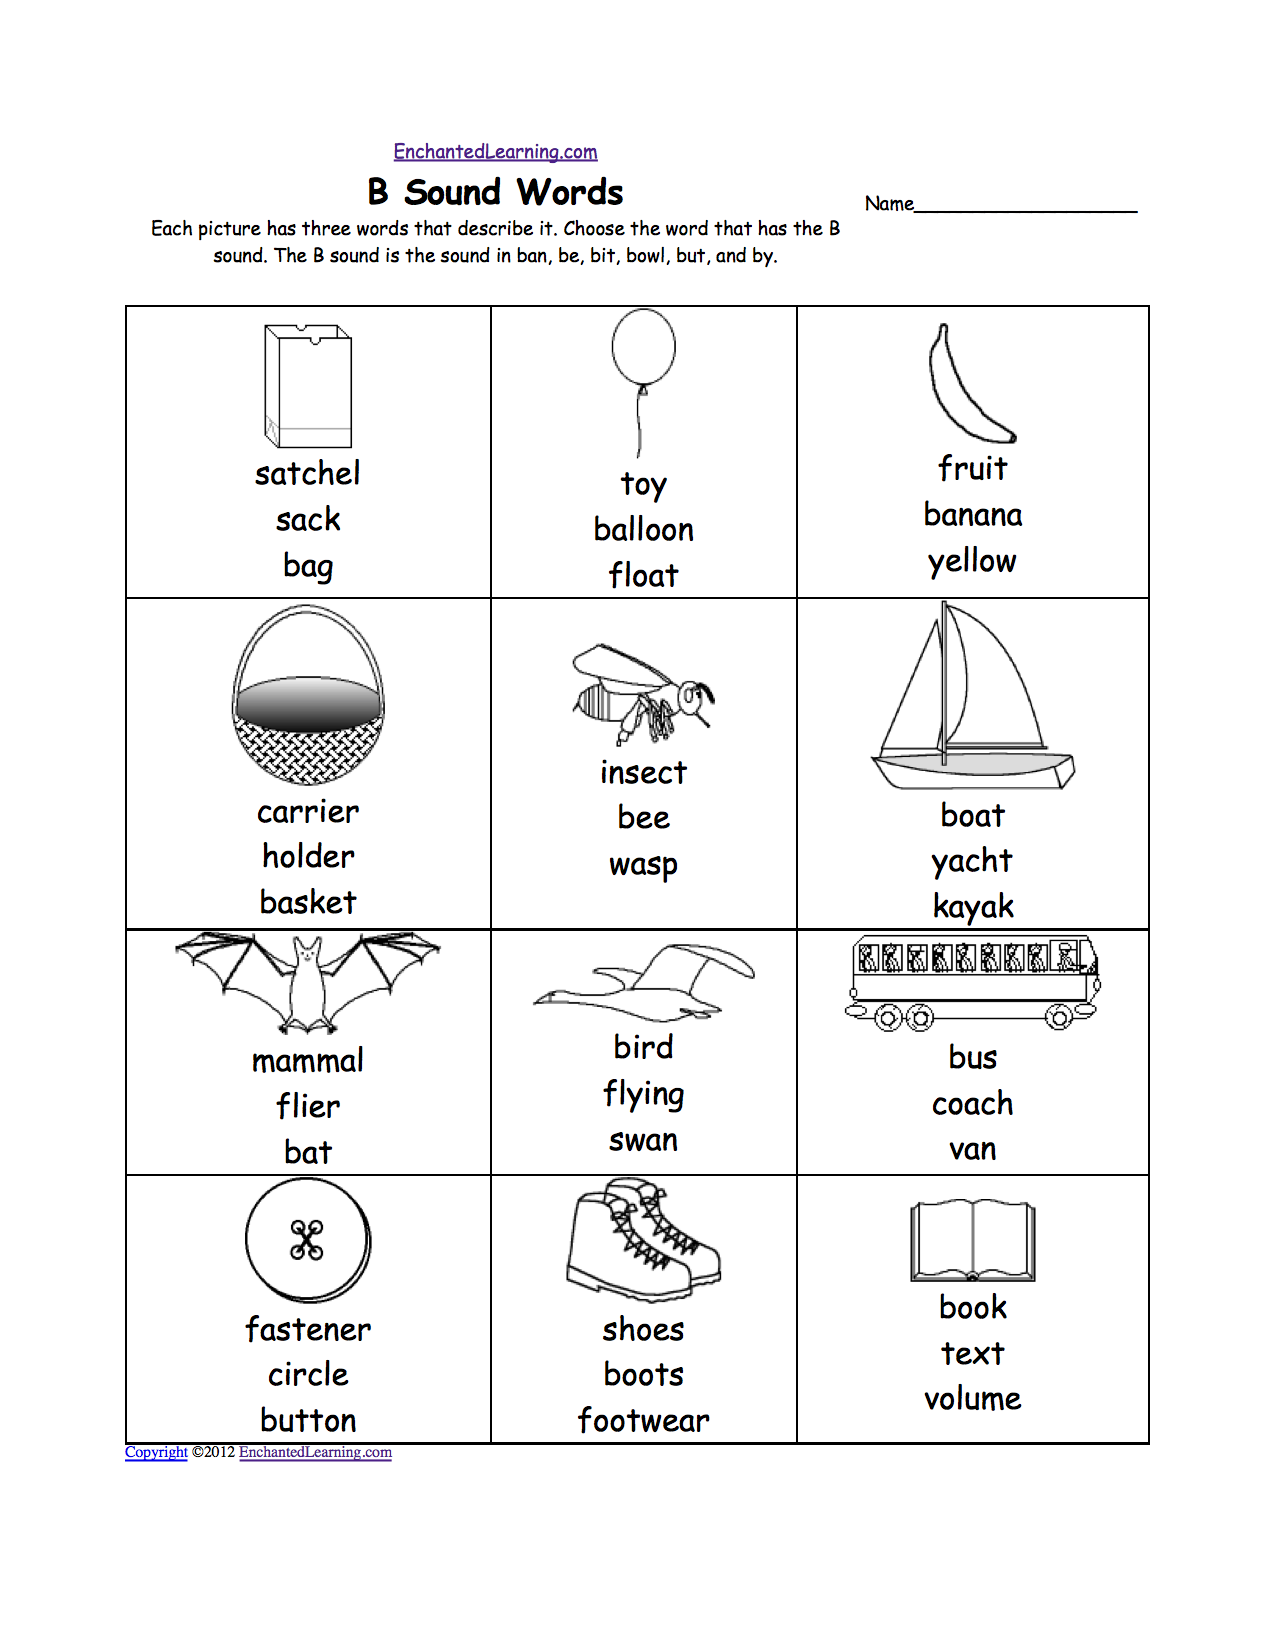 Proatmealus  Terrific Phonics Worksheets Multiple Choice Worksheets To Print  With Great Quotbquot Sound Phonics Worksheet Multiple Choice Each Picture Has Three Words That Describe It Choose The Word That Has A Quotbquot Sound The Quotbquot Sound Is The Sound  With Alluring Ordering Numbers  To  Worksheets Also Math Worksheets For Rd Grade Word Problems In Addition Plant And Animal Cells Labeling Worksheet And Printable Piano Theory Worksheets As Well As Abeka Math Worksheets Additionally Past Continuous Worksheets From Enchantedlearningcom With Proatmealus  Great Phonics Worksheets Multiple Choice Worksheets To Print  With Alluring Quotbquot Sound Phonics Worksheet Multiple Choice Each Picture Has Three Words That Describe It Choose The Word That Has A Quotbquot Sound The Quotbquot Sound Is The Sound  And Terrific Ordering Numbers  To  Worksheets Also Math Worksheets For Rd Grade Word Problems In Addition Plant And Animal Cells Labeling Worksheet From Enchantedlearningcom